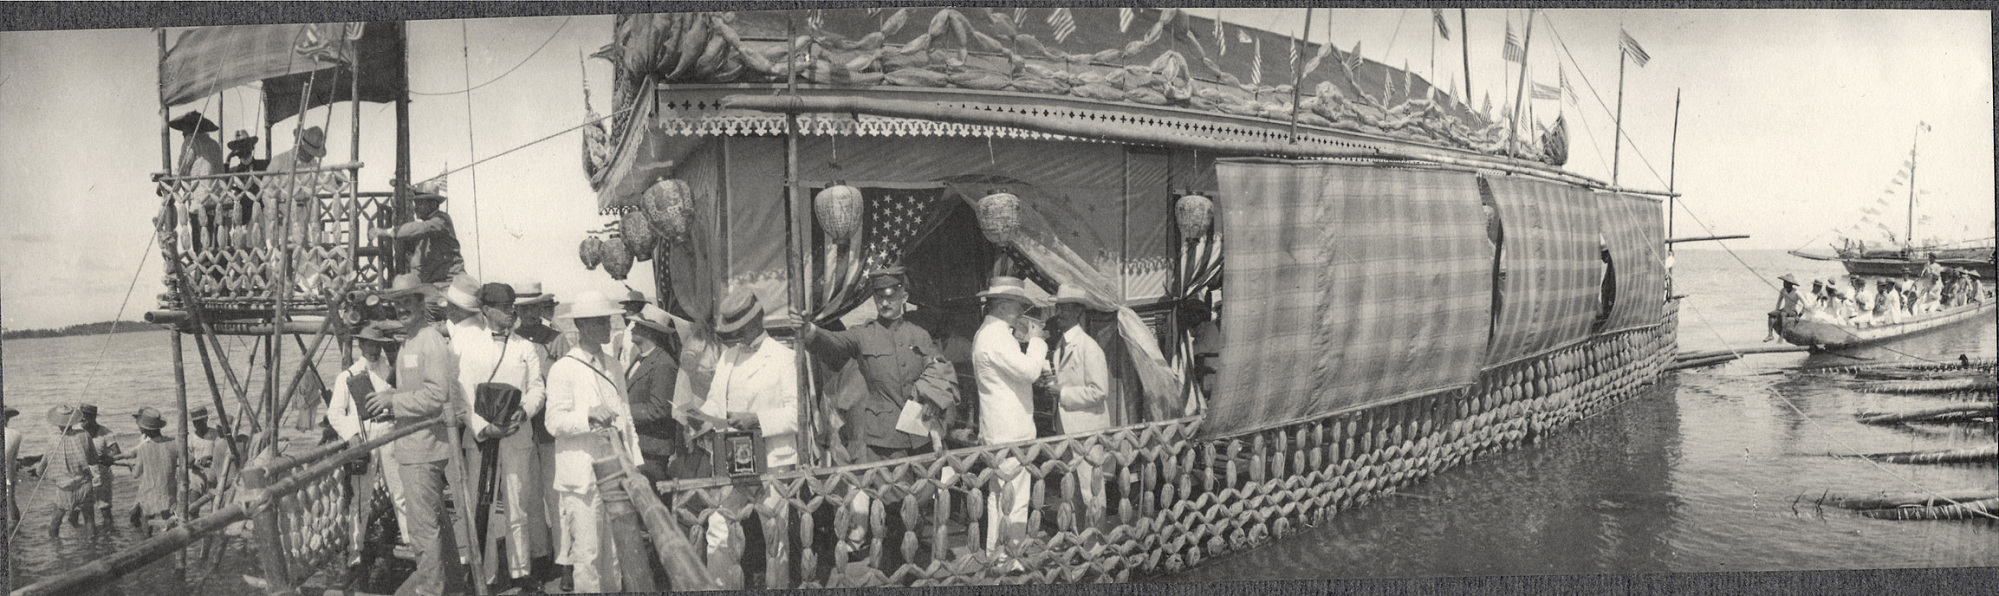 16-Aug-05: Bacolod: Ceremonial raft on the occasion of the visit of William H. Taft